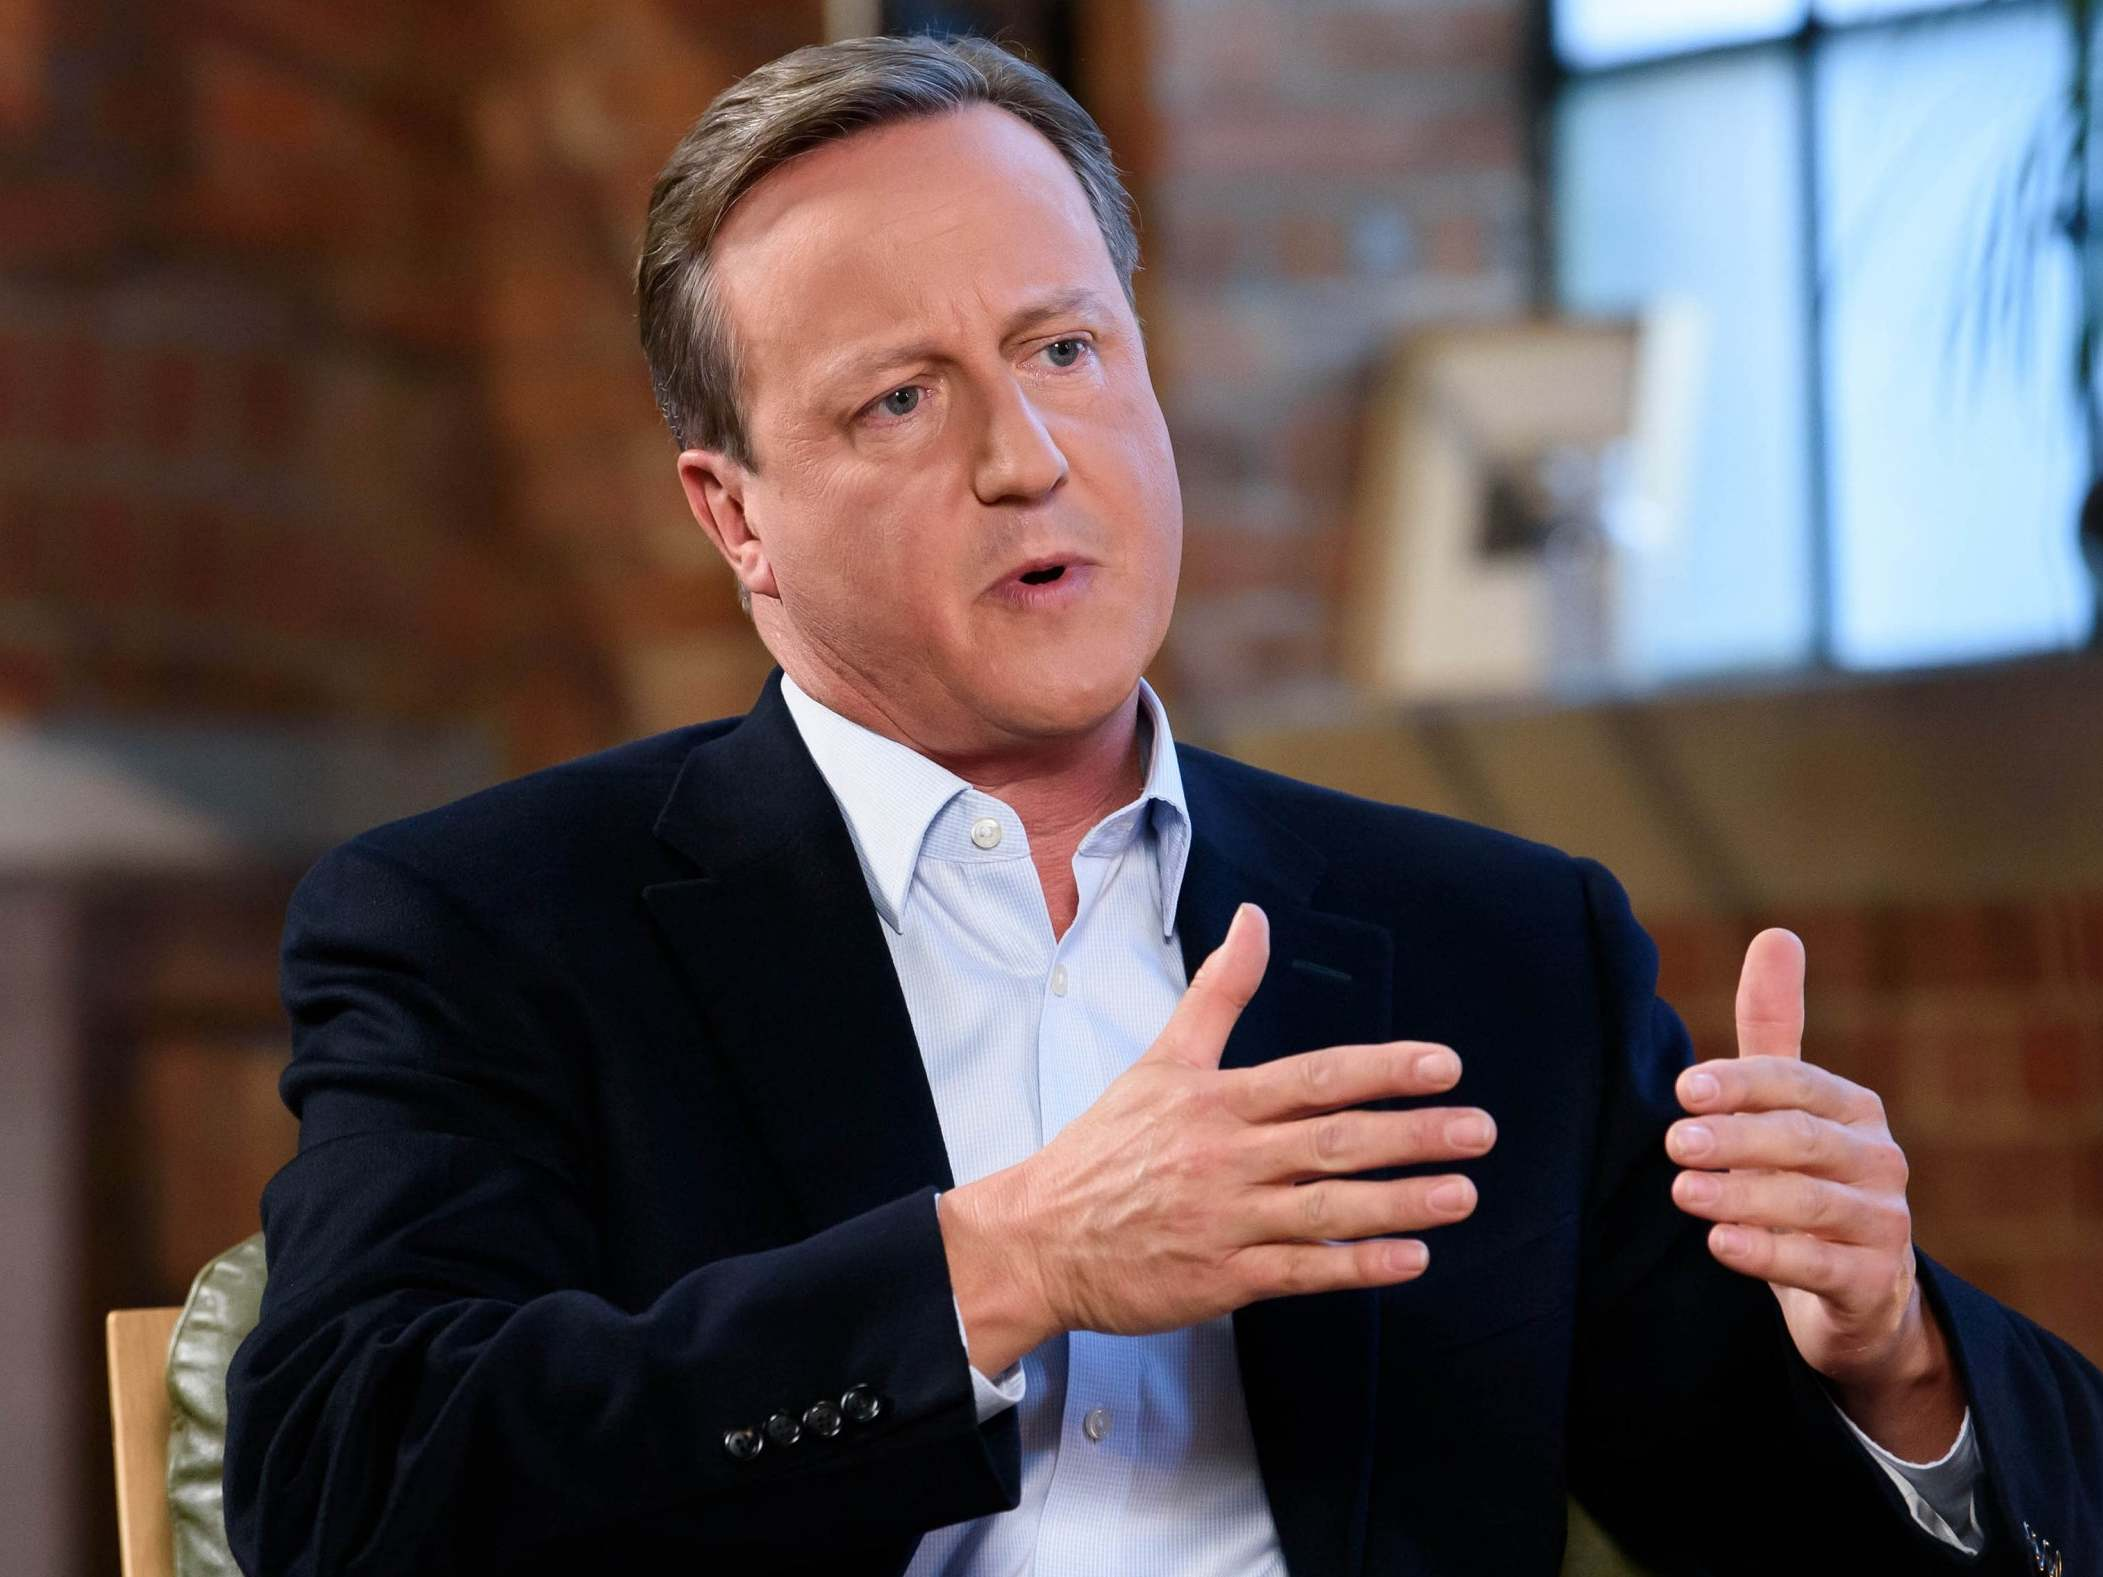 David Cameron breaks silence on 'false and ludicrous' dead pig allegations